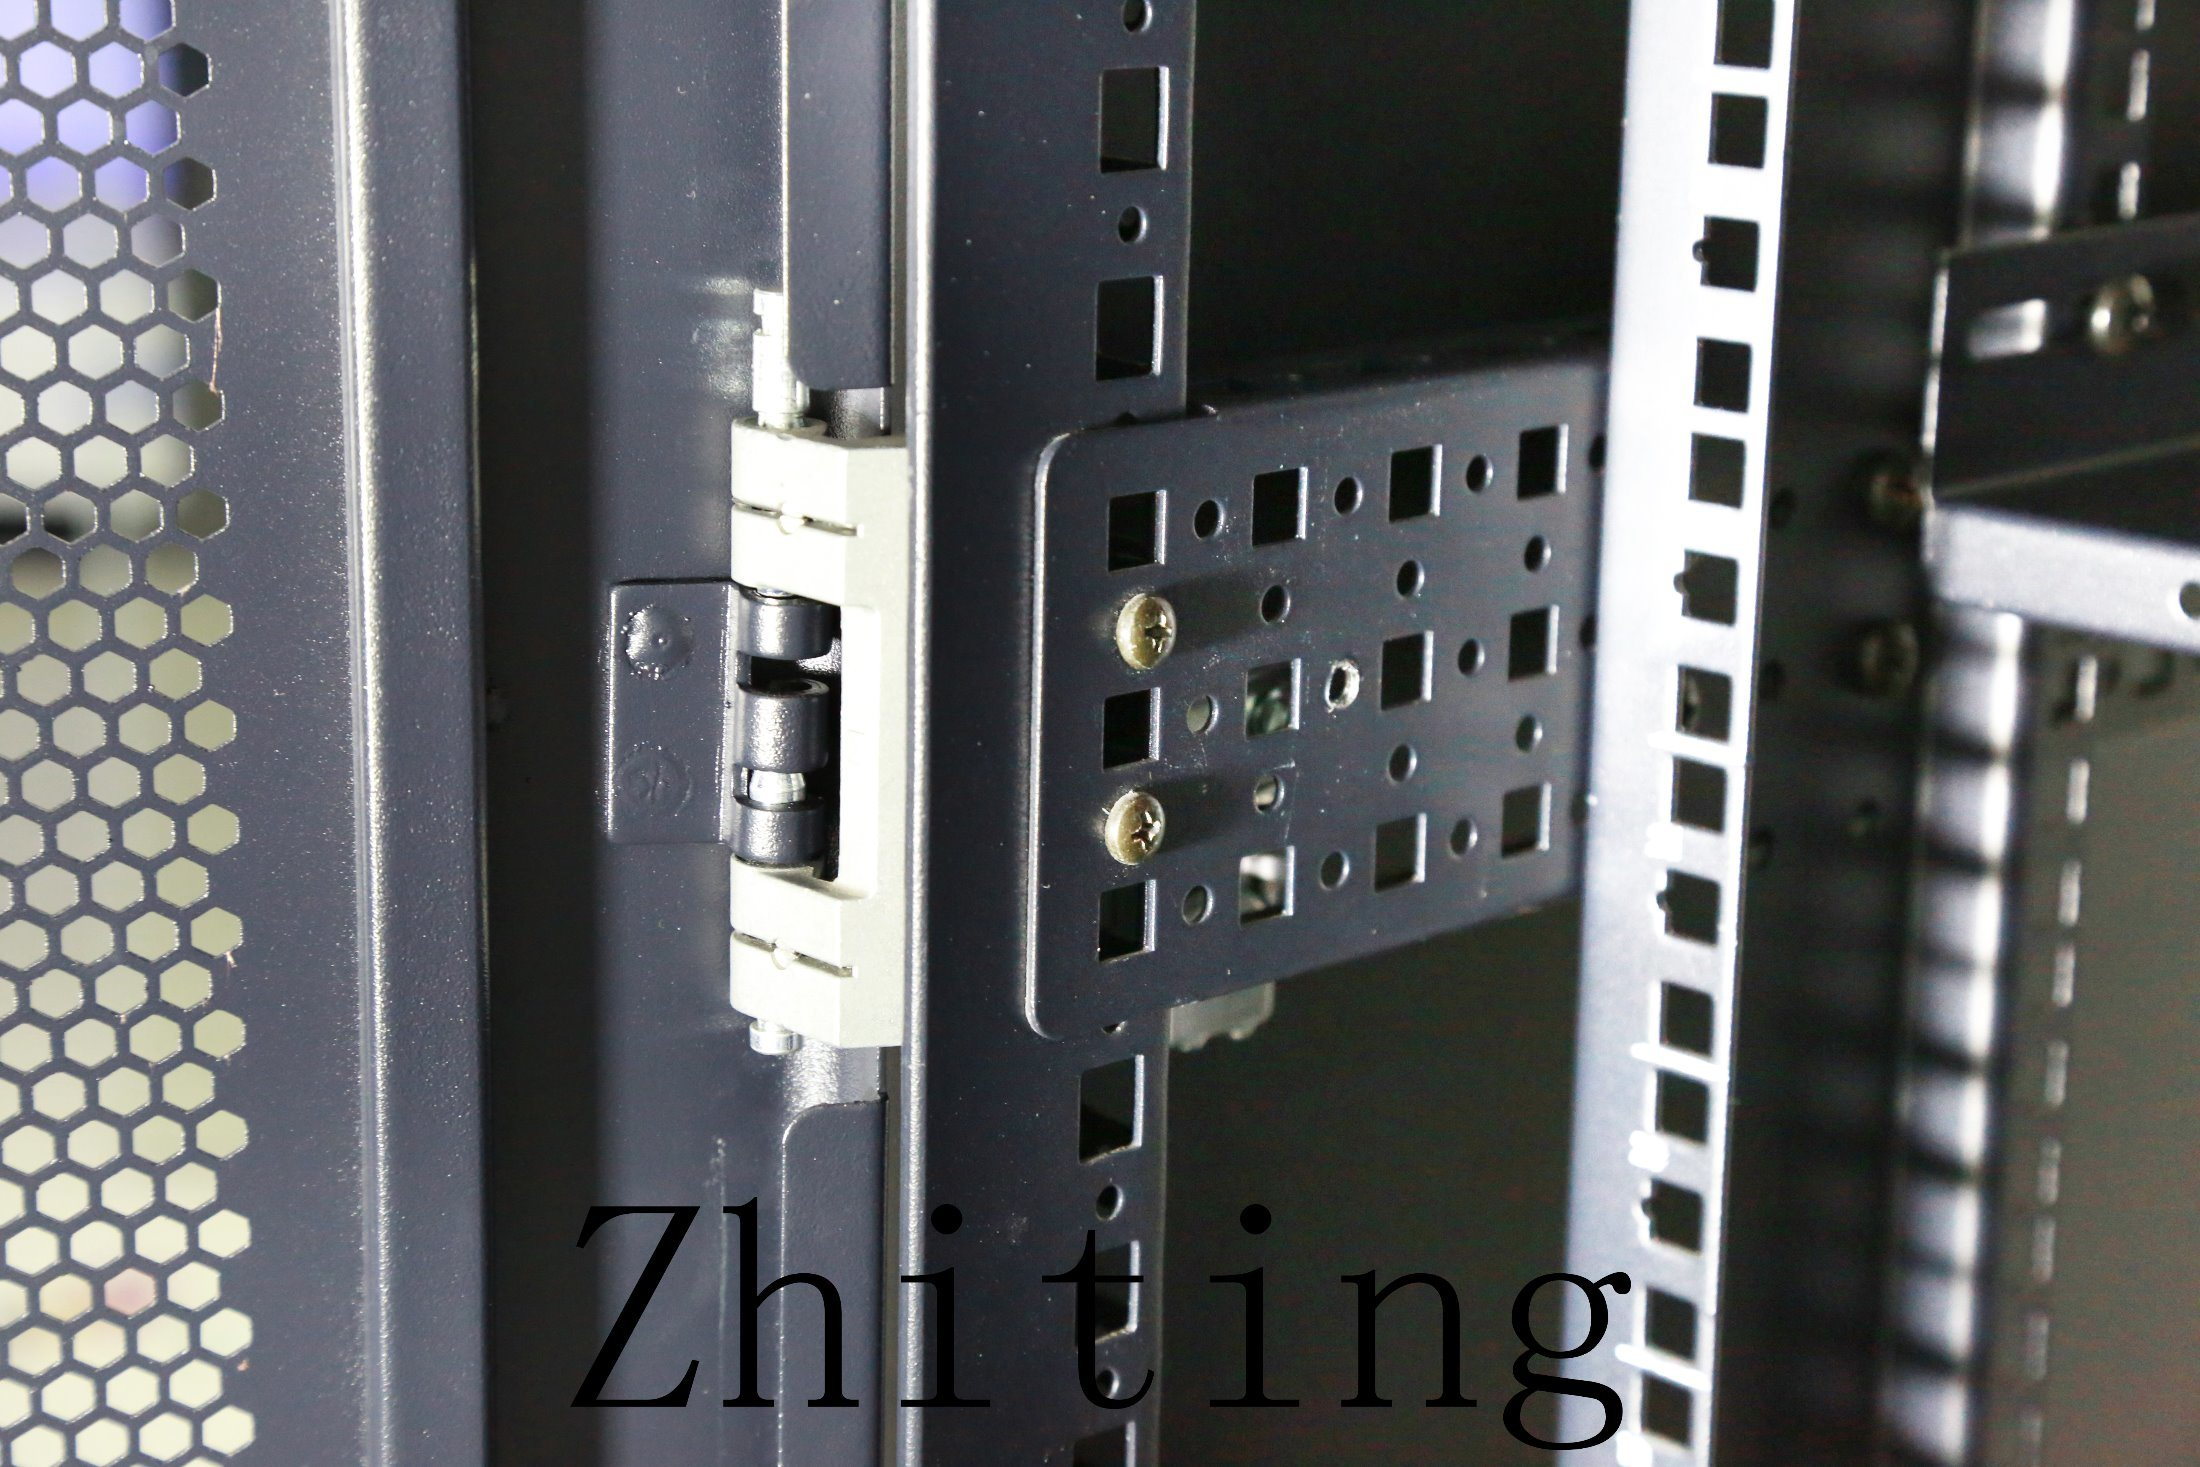 19 Inch Zt HS Series Rack Enclosures with Earthquake Resistant Structure